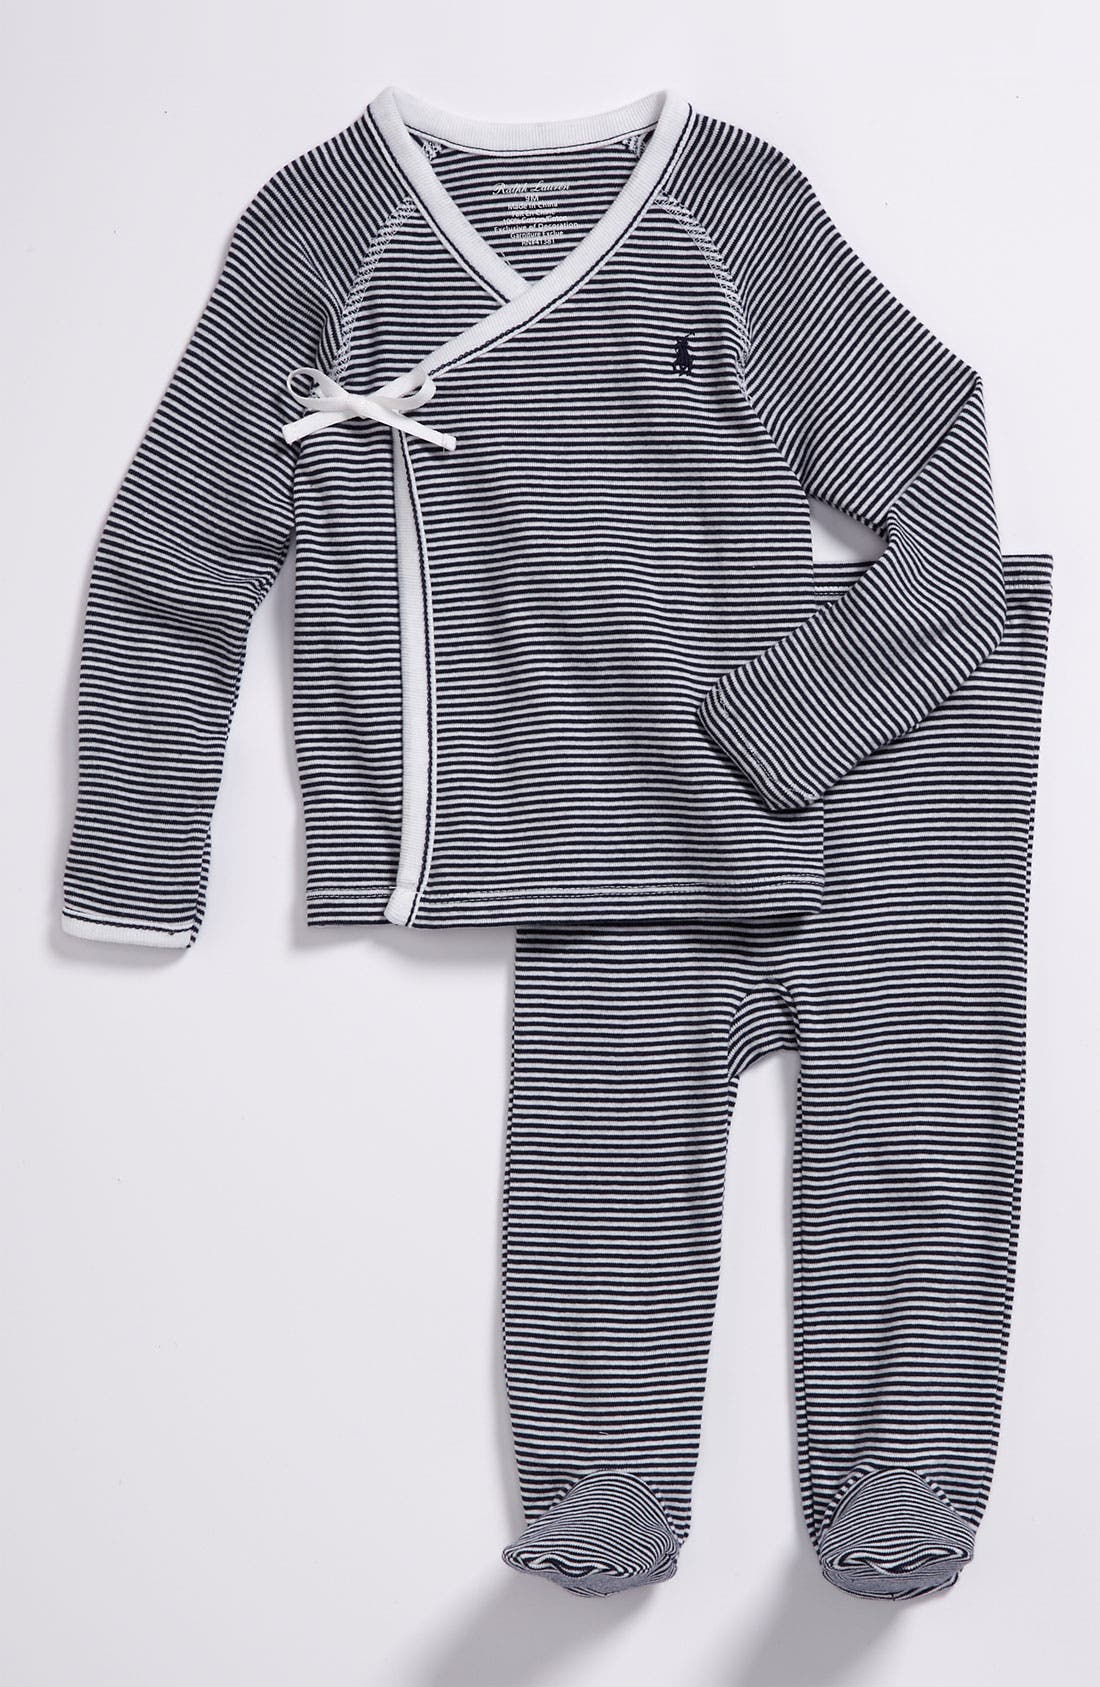 Main Image - Ralph Lauren Stripe Kimono Two-Piece Set (Baby)